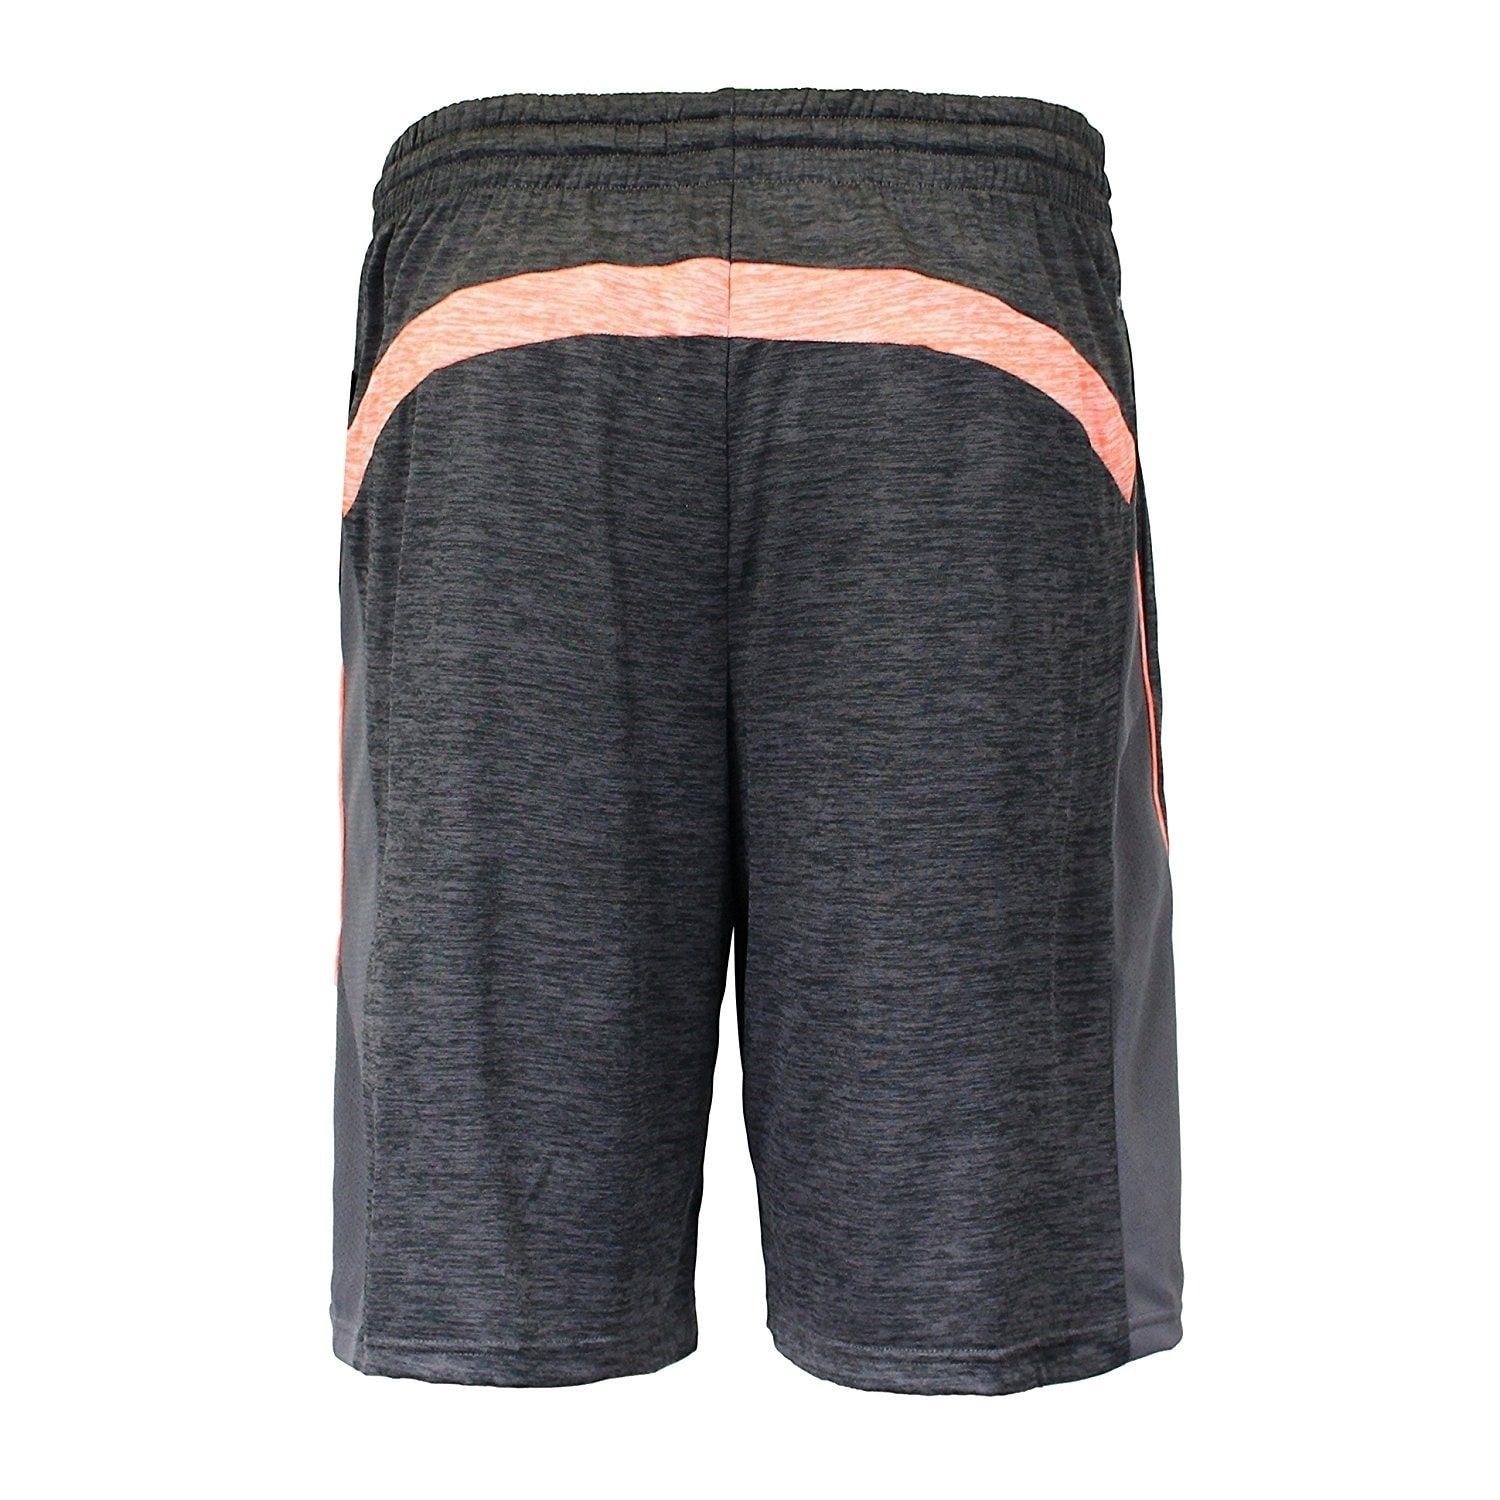 Lotto athletic mens performance knit short workout